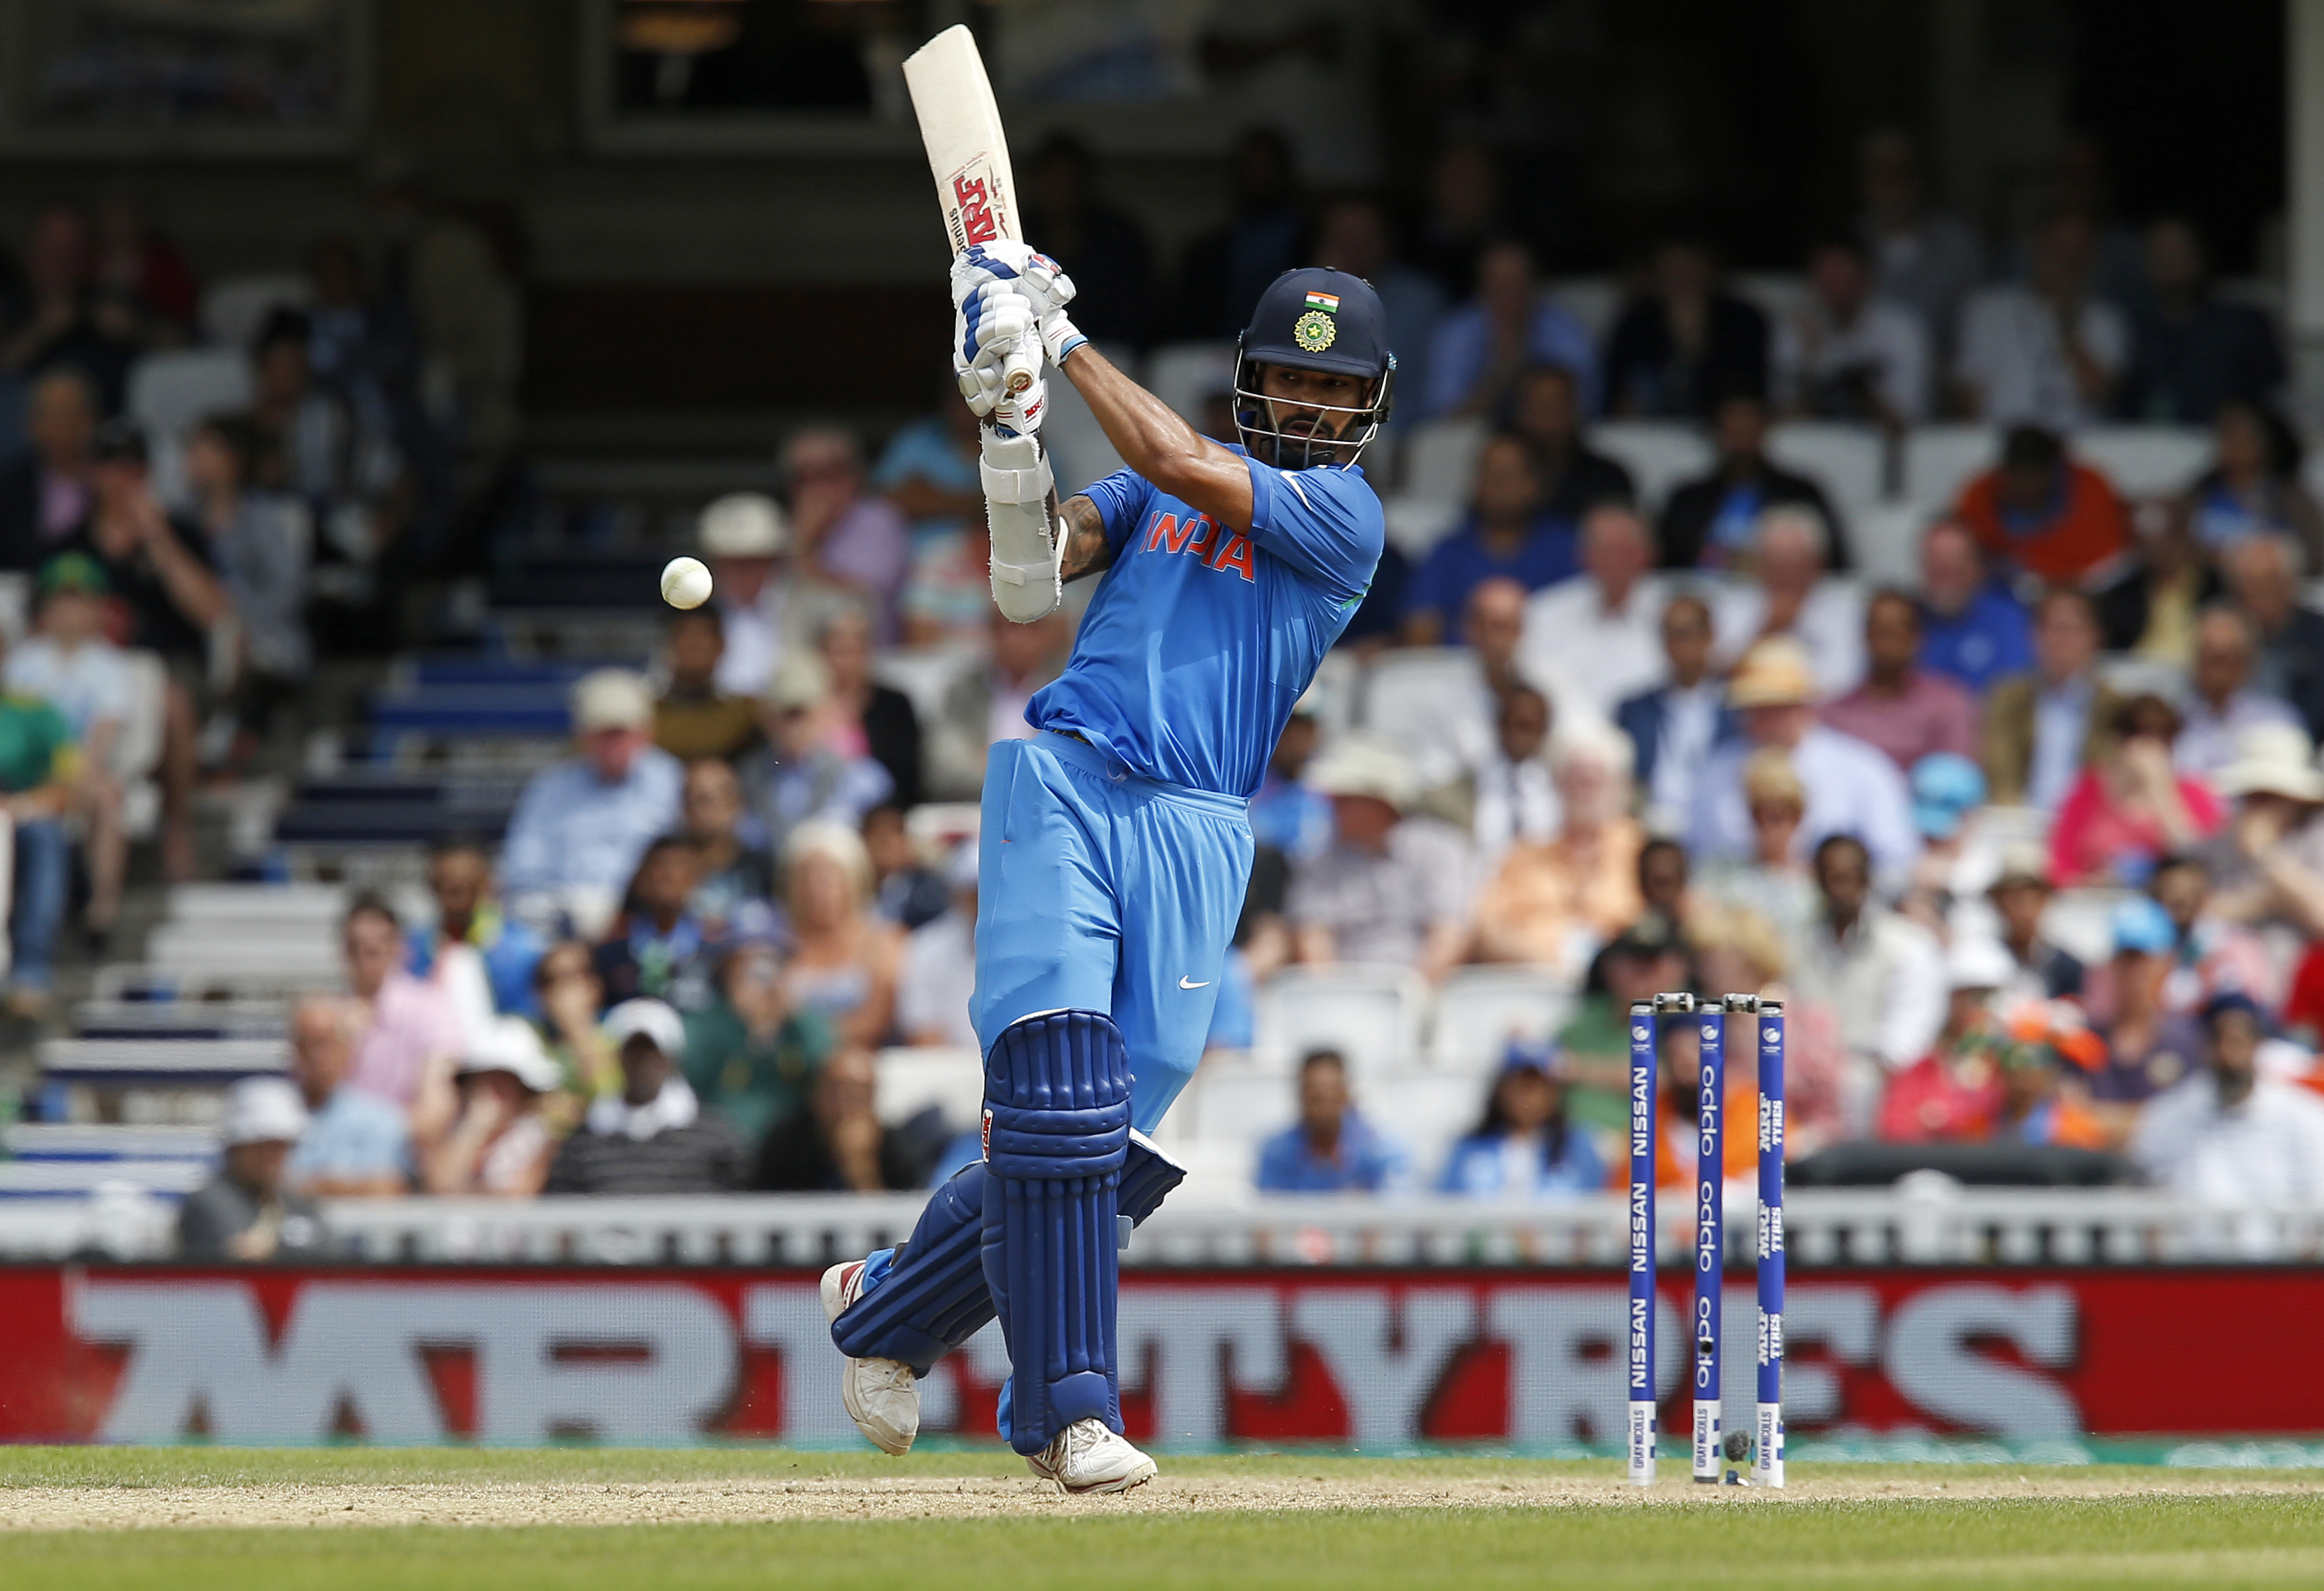 Shikhar Dhawan's rich vein of form continues. Photo: AFP